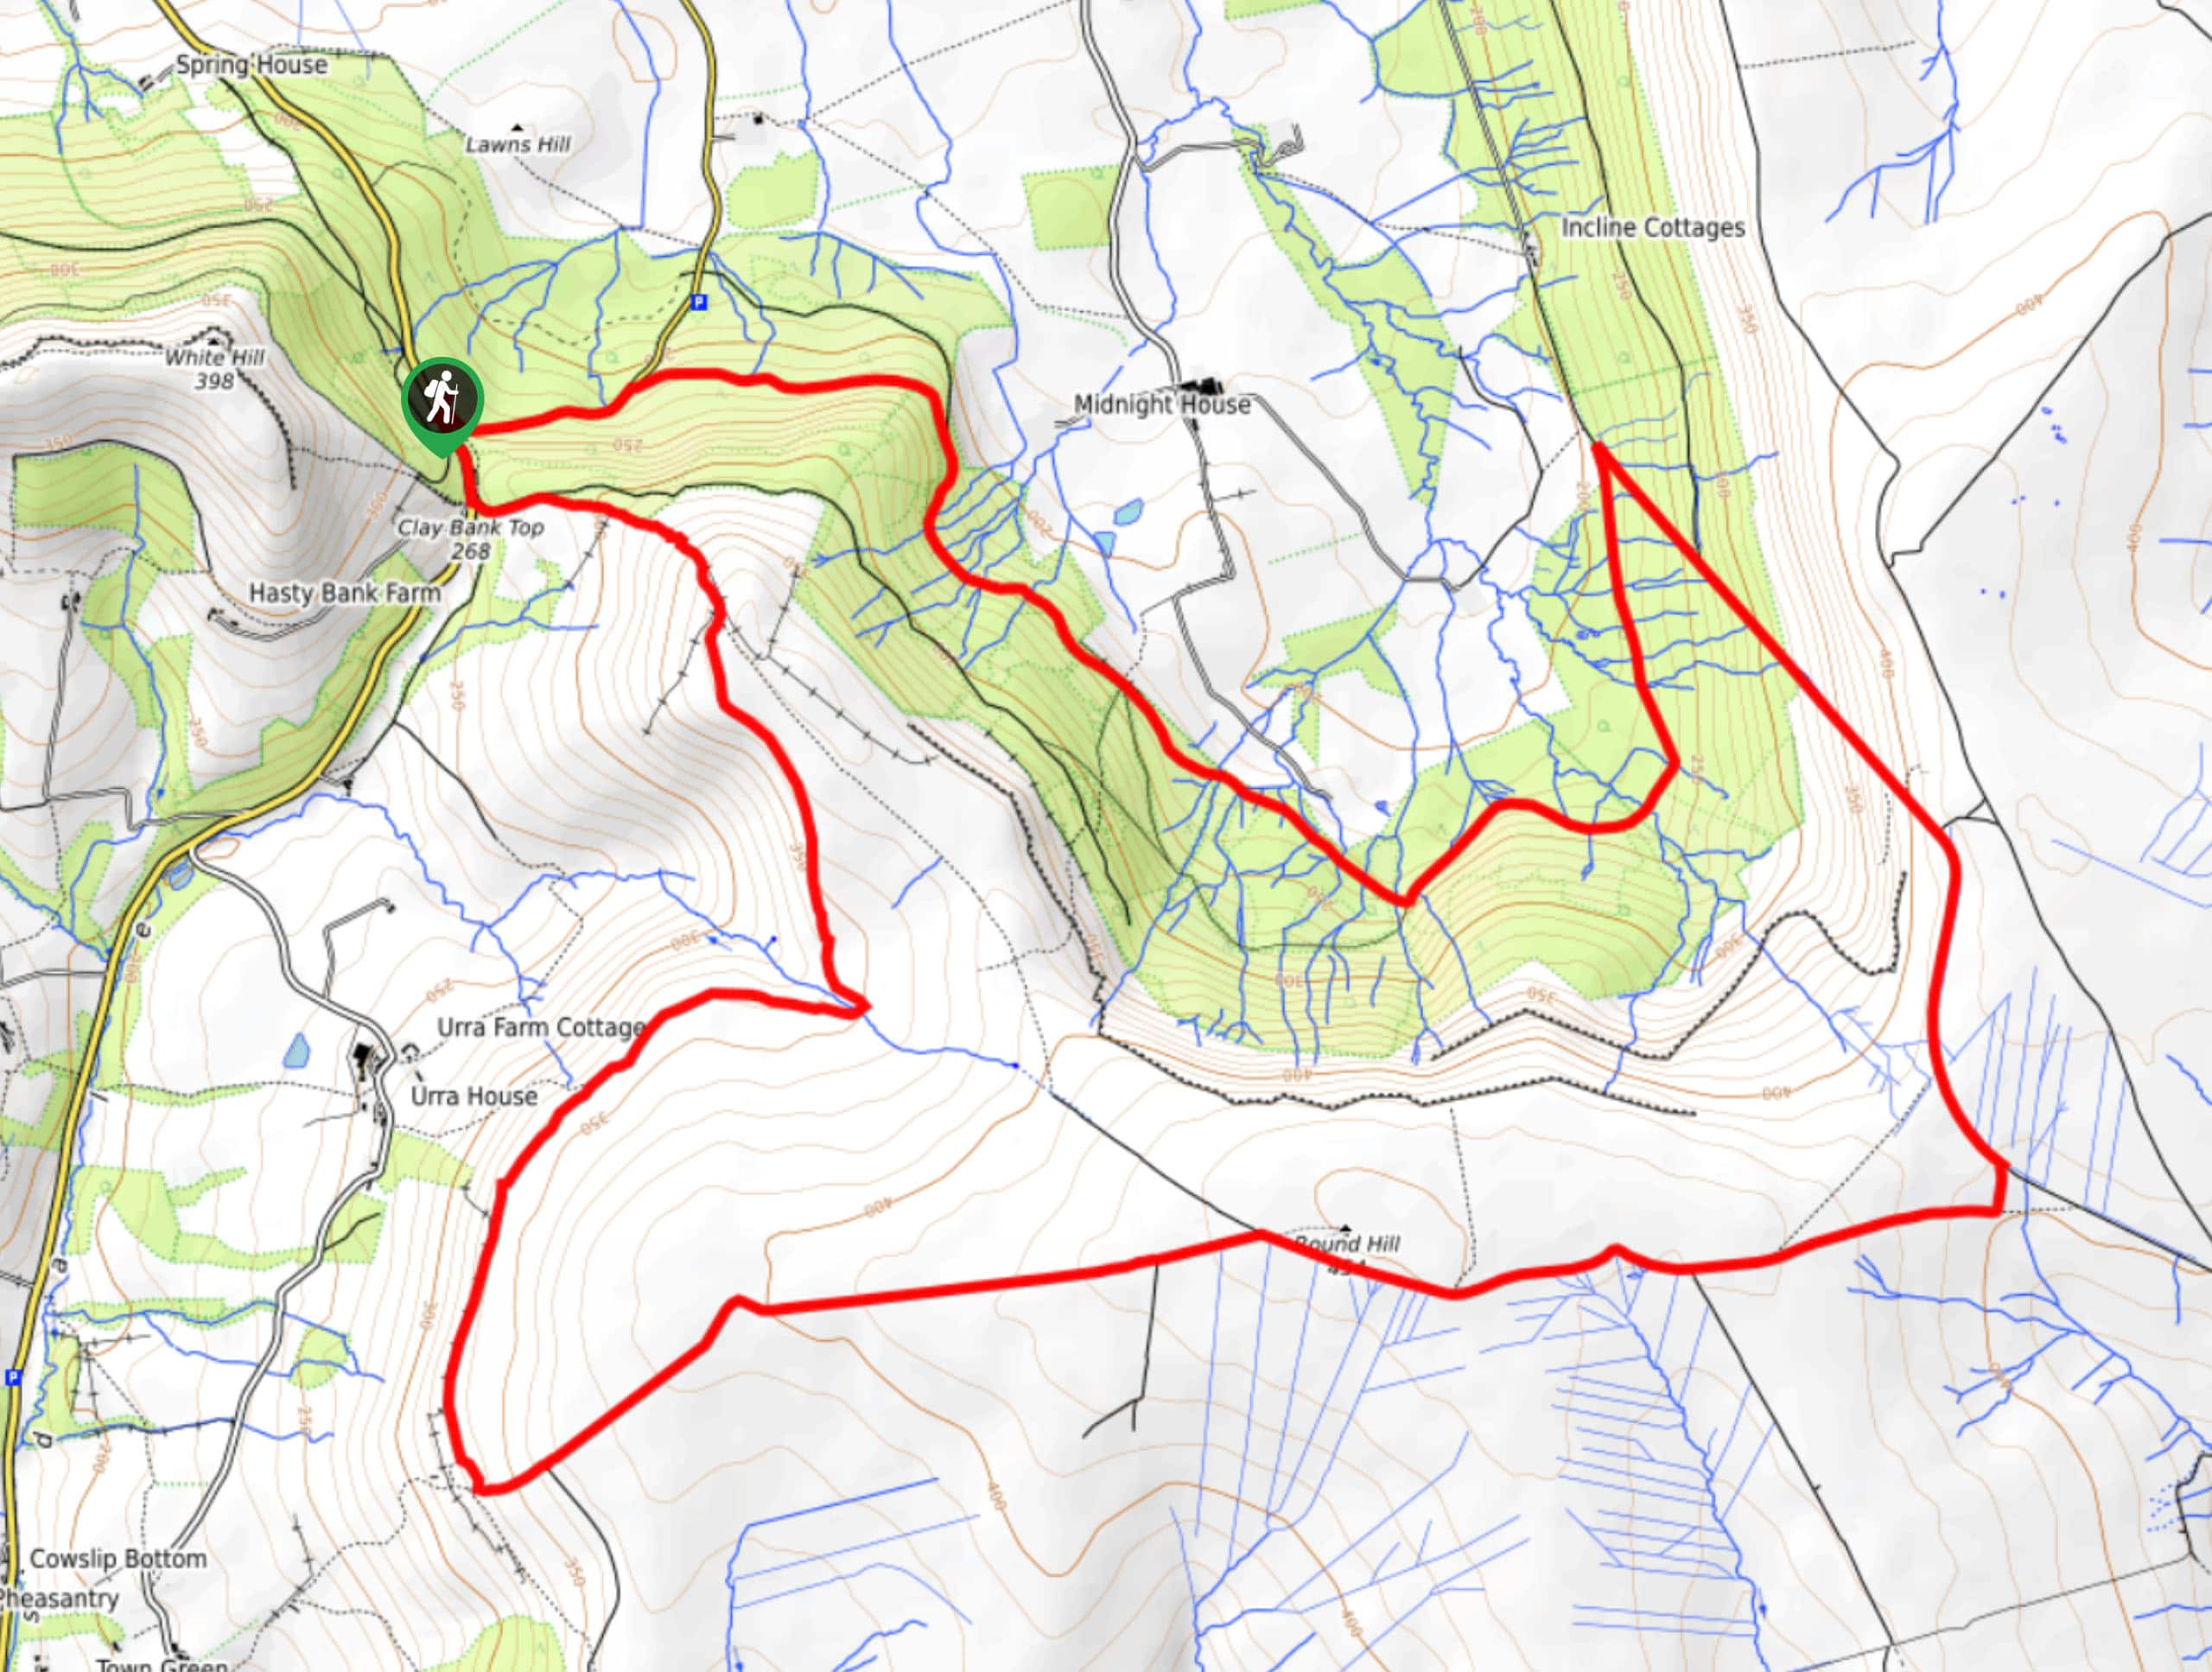 Clay Bank Top and Ingleby Incline Walk Map